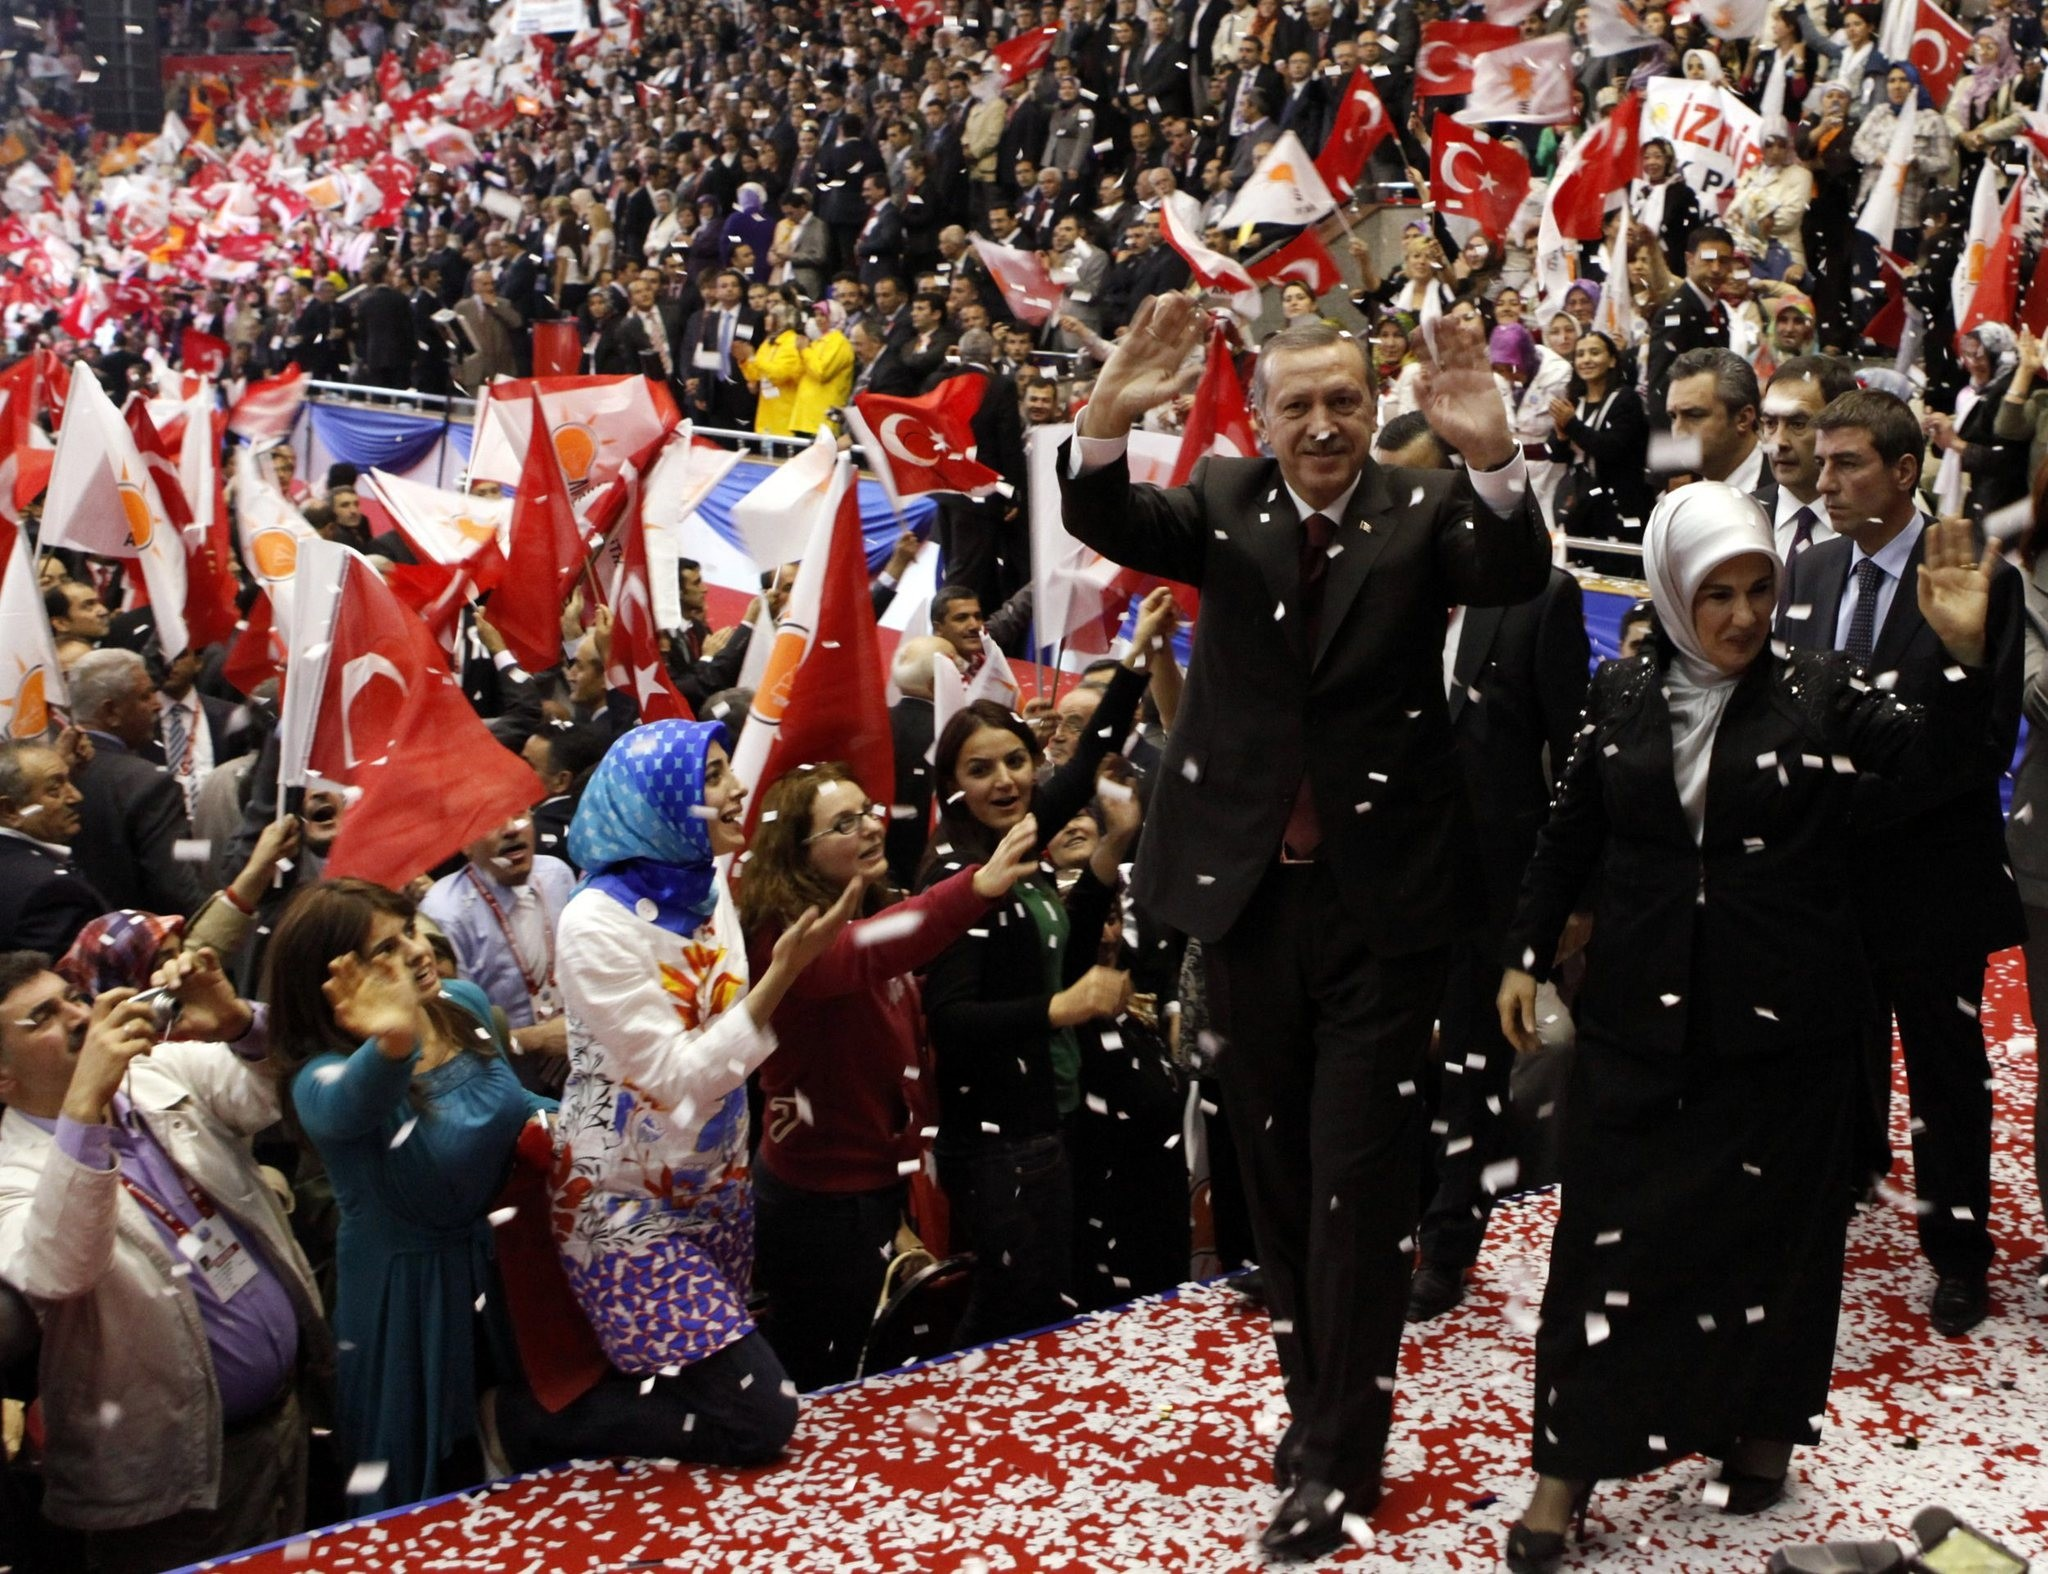 Then Prime Minister Erdou011fan, accompanied by his wife Emine Erdou011fan, greets supporters as he enters the hall for the third, AK Party congress, Ankara, Oct. 3, 2009.